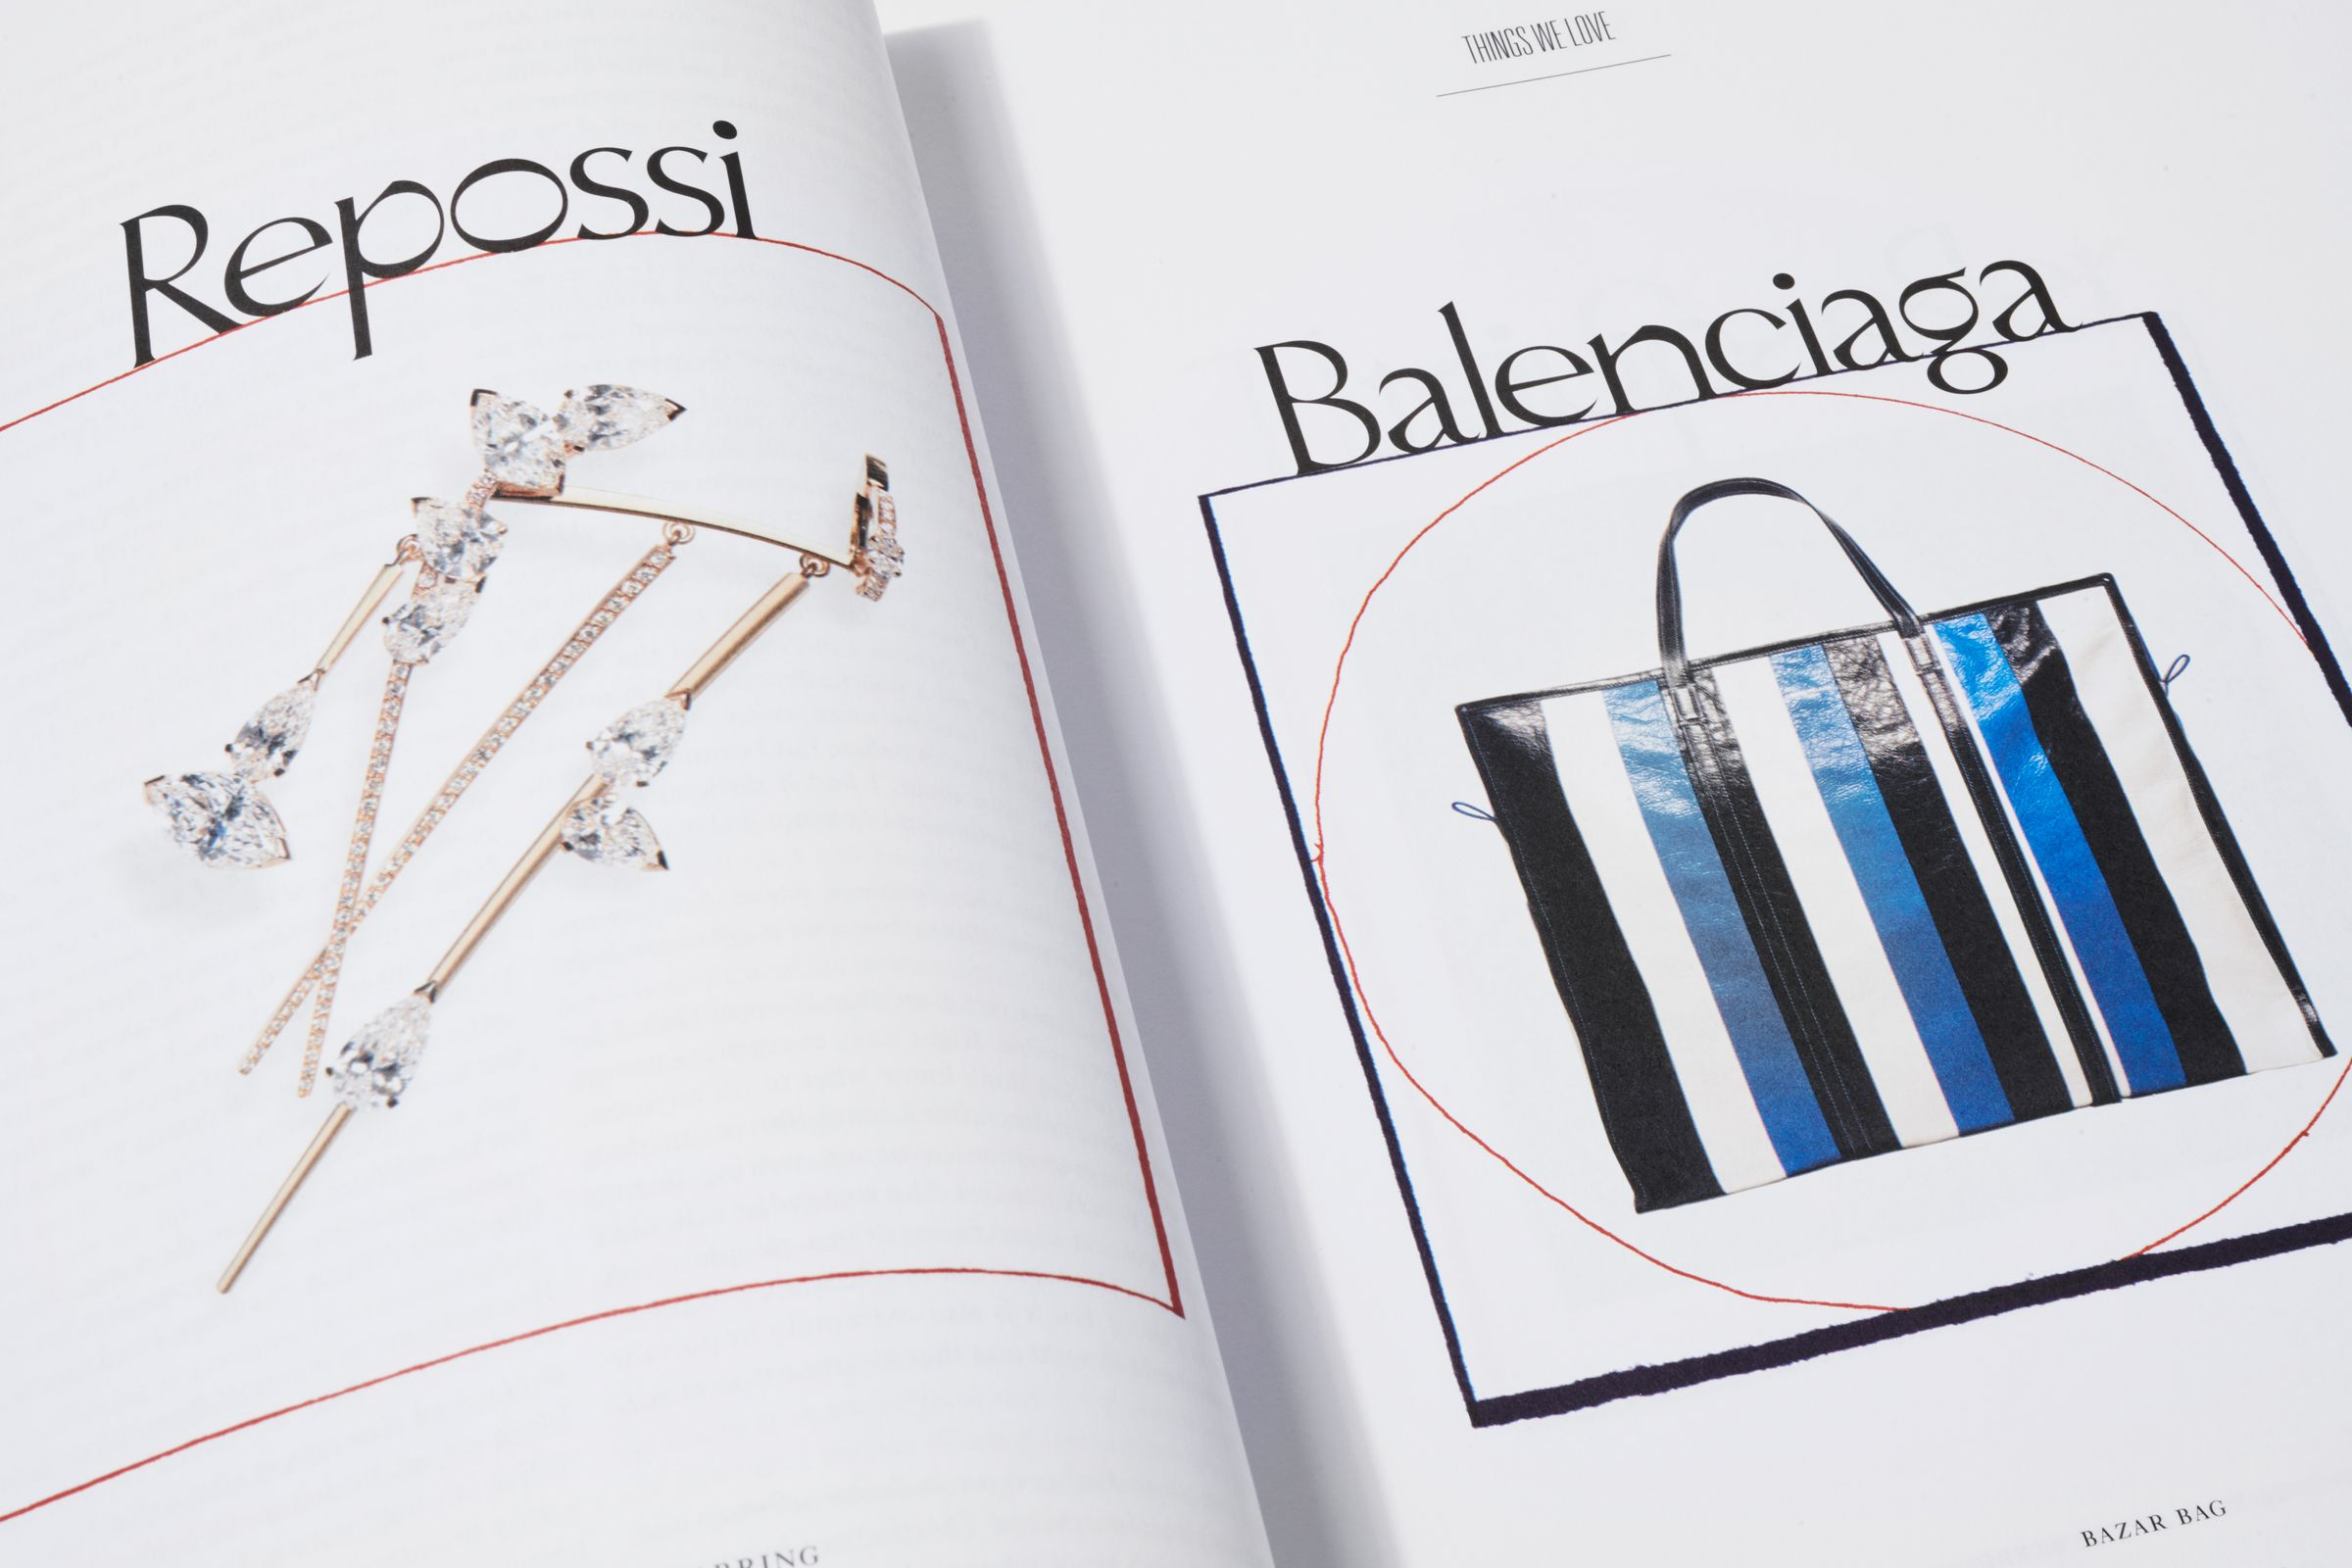 Rika Magazine issue no. 15 Things We Love: Repossi and Balenciaga